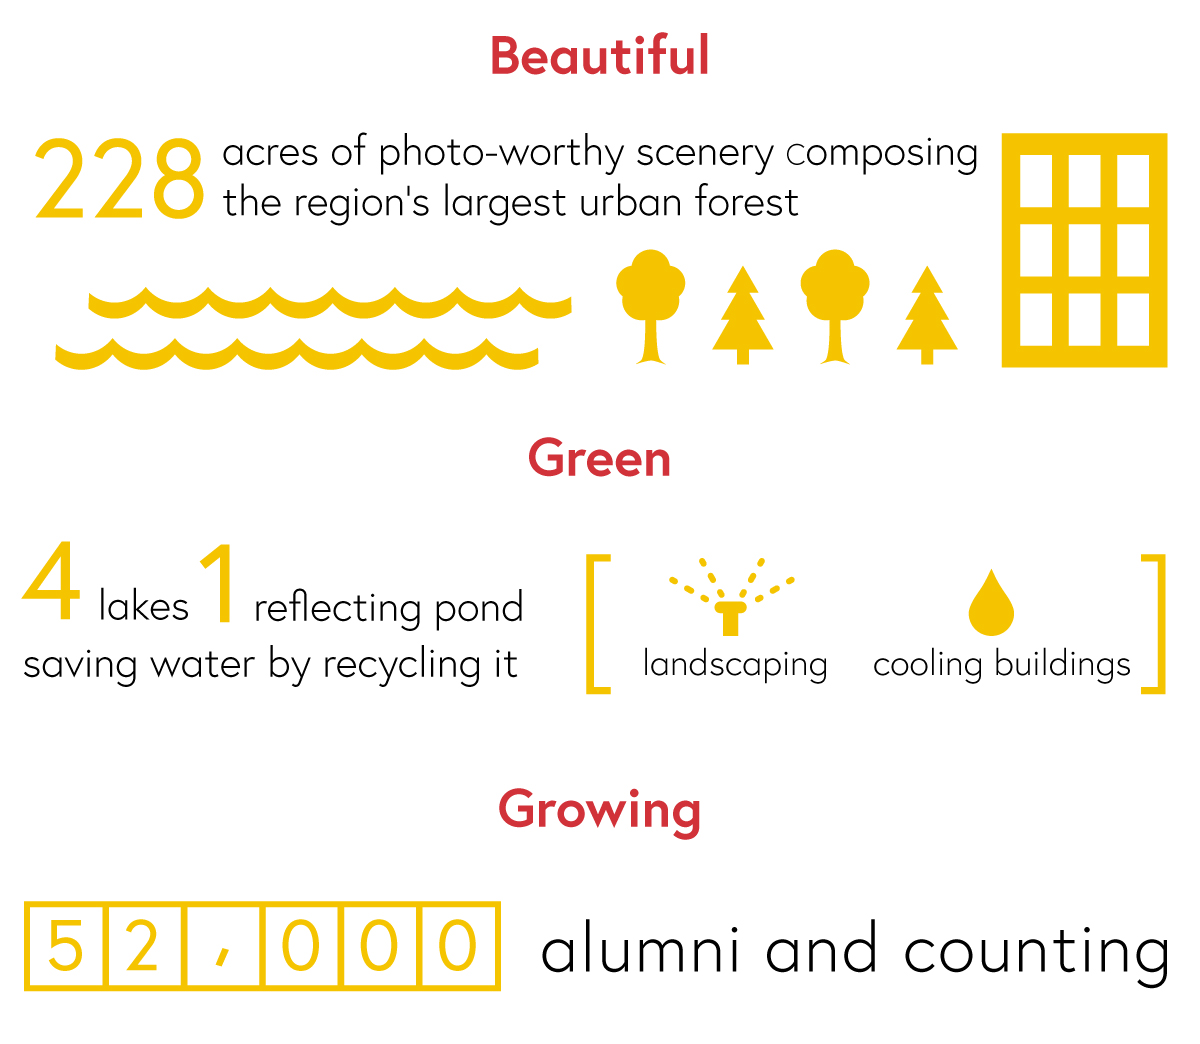 Beautiful: 228 acres of photo-worthy scenery composing the region's largest urban forest.<br />Green: 4 lakes, 1 reflecting pond saving water by recycling it for landscaping and cooling buildings.<br />Growing: 52,000 alumni and counting